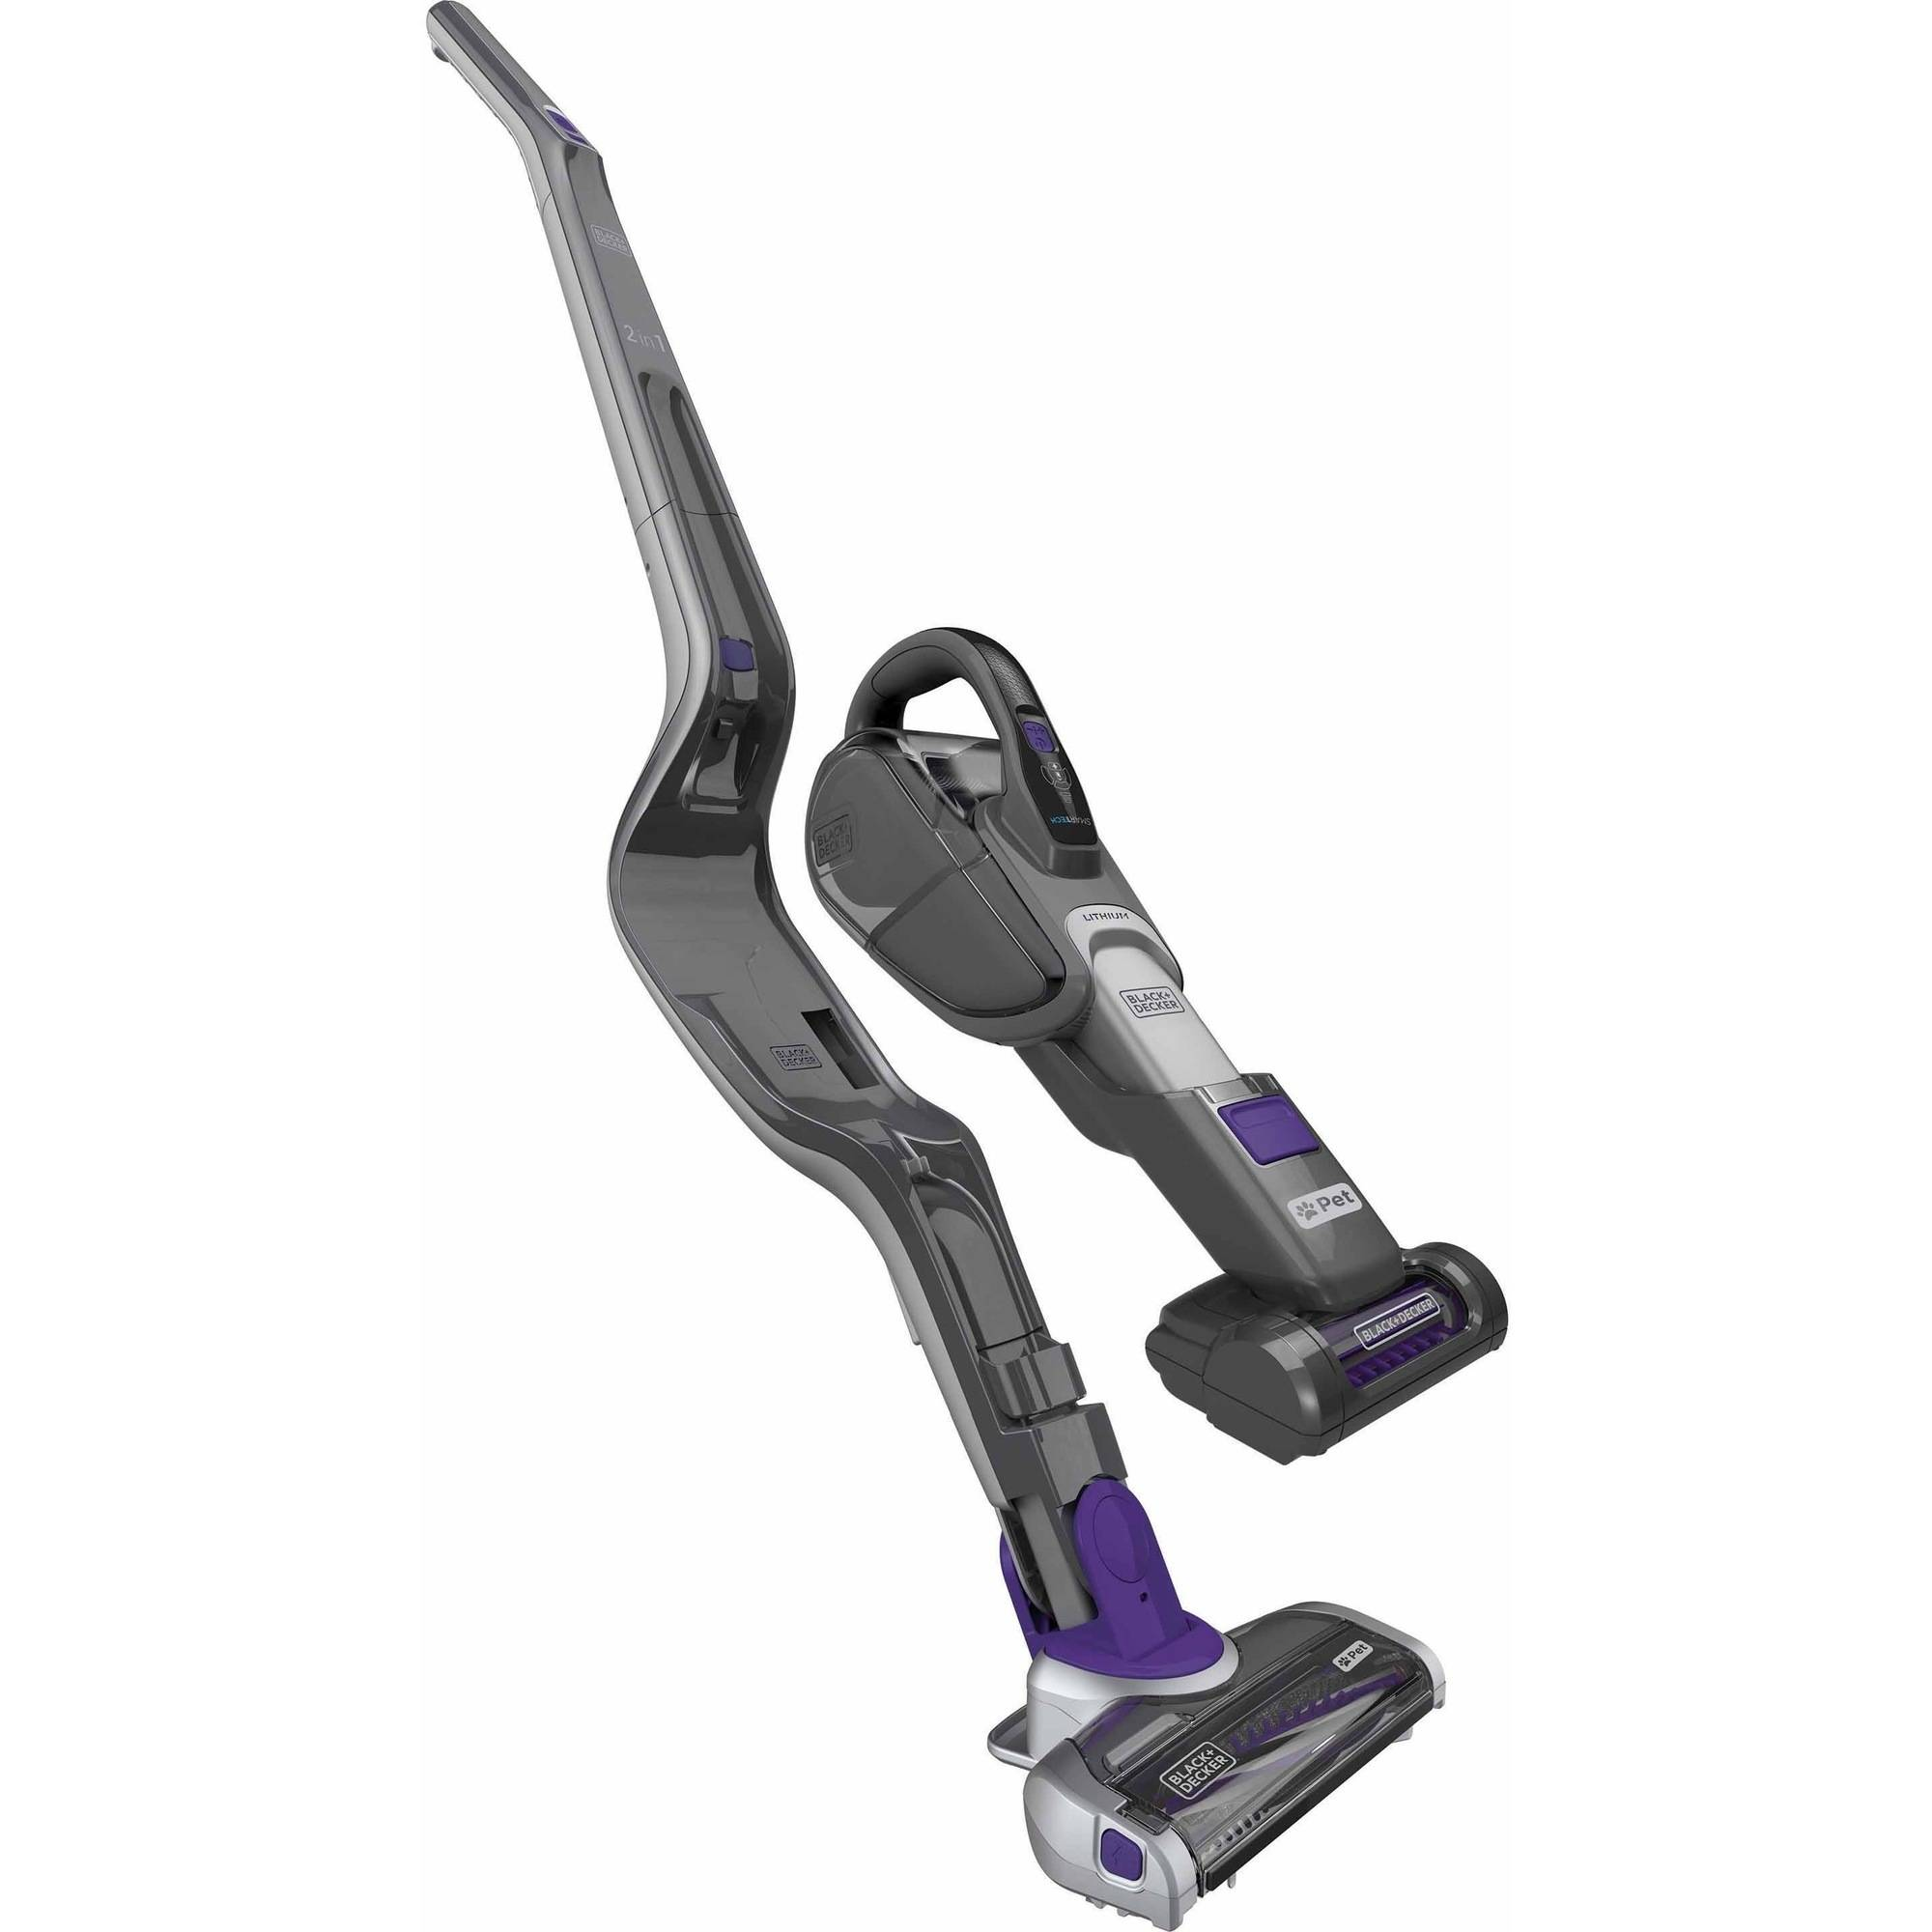 Black+Decker Hsvj520 Jmpa07 Pet 2 In 1 Cordless Lithium Stick Vacuum With Smartech by Black+Decker